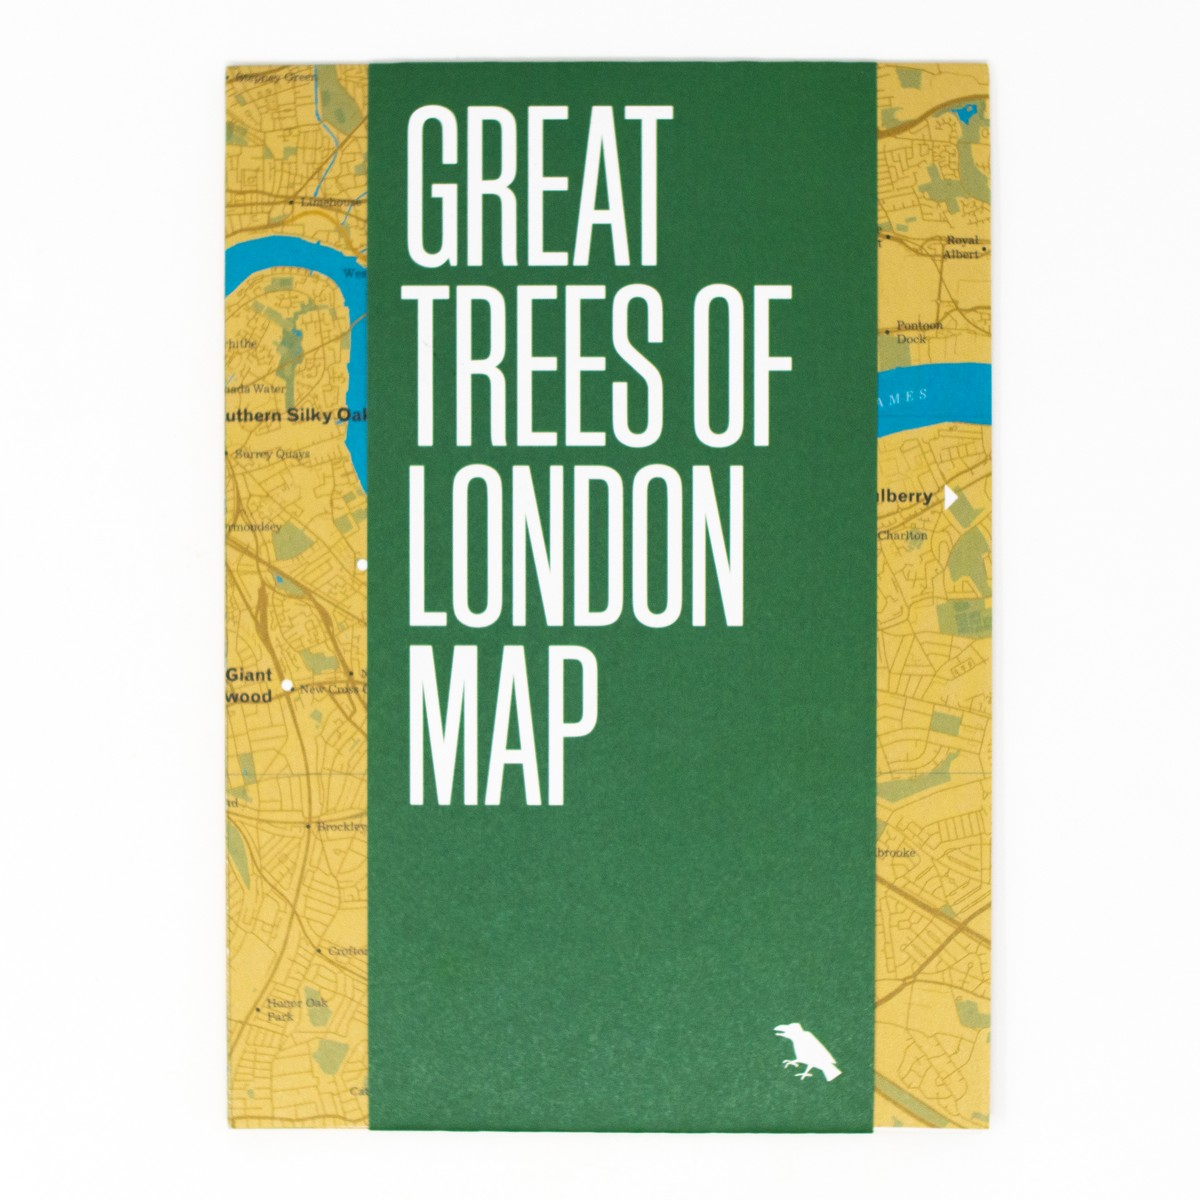 Photo of Great Trees of London Map